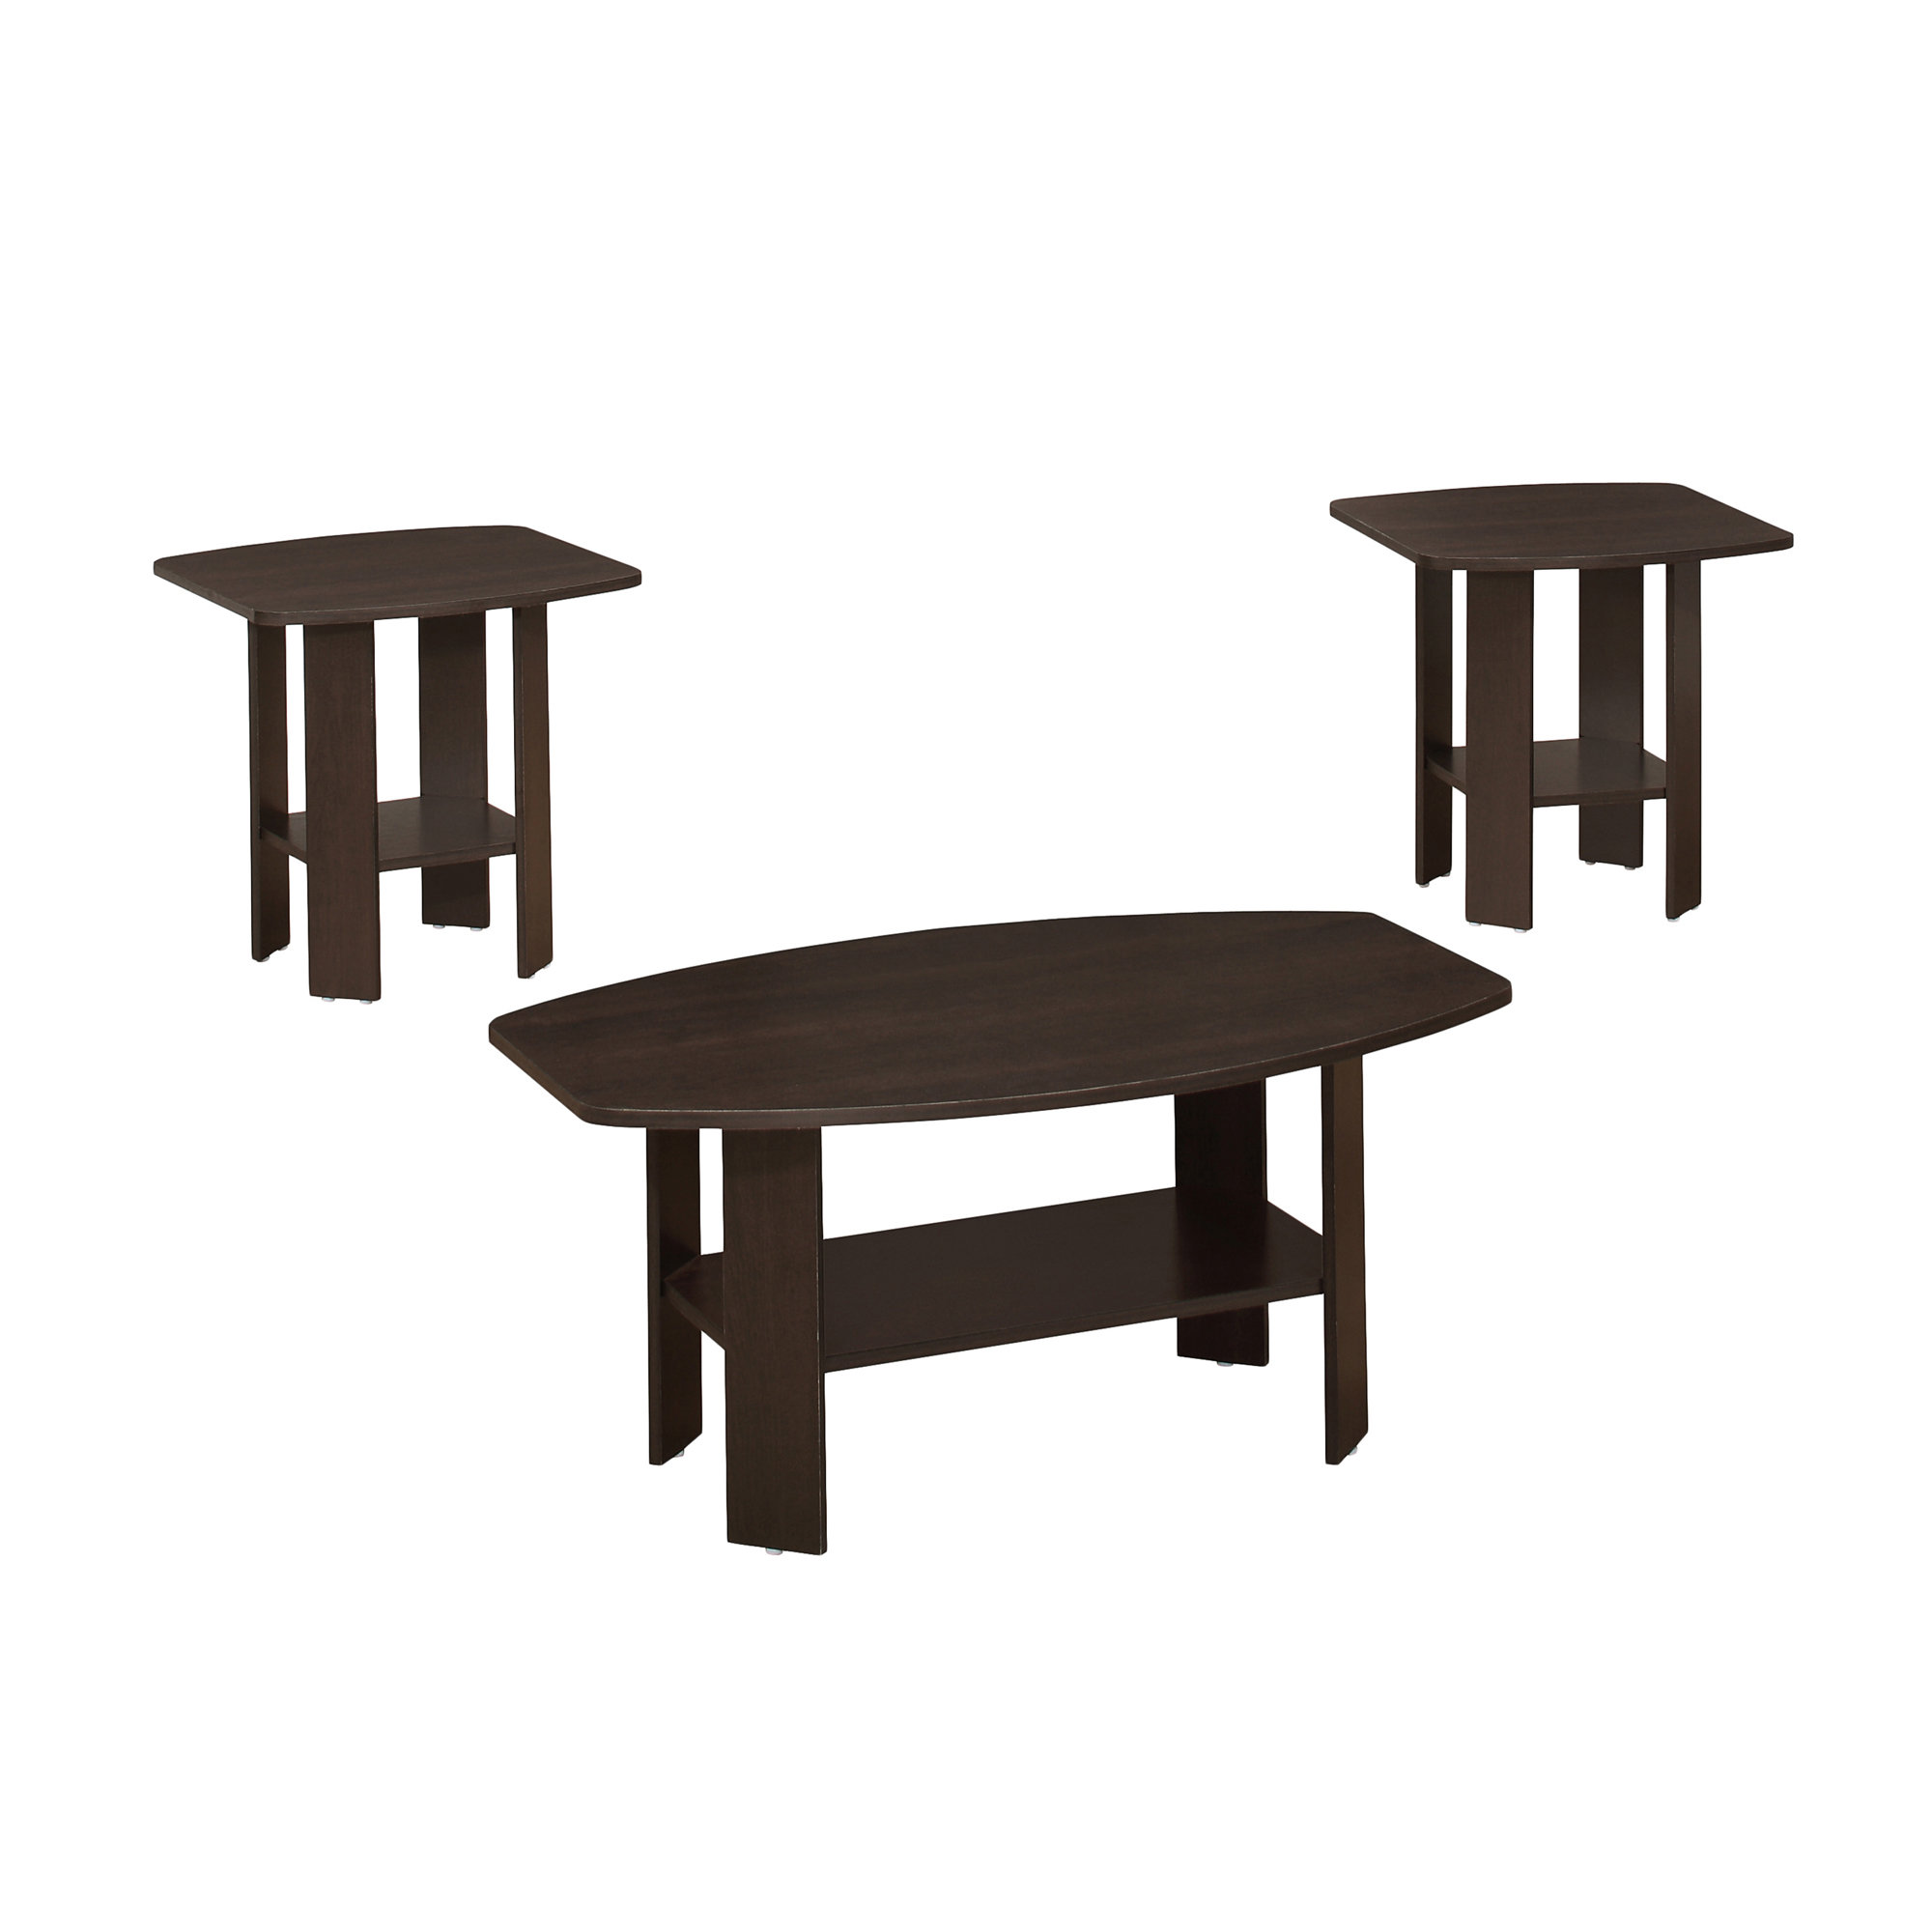 TABLE SET - 3PCS SET / CAPPUCCINO